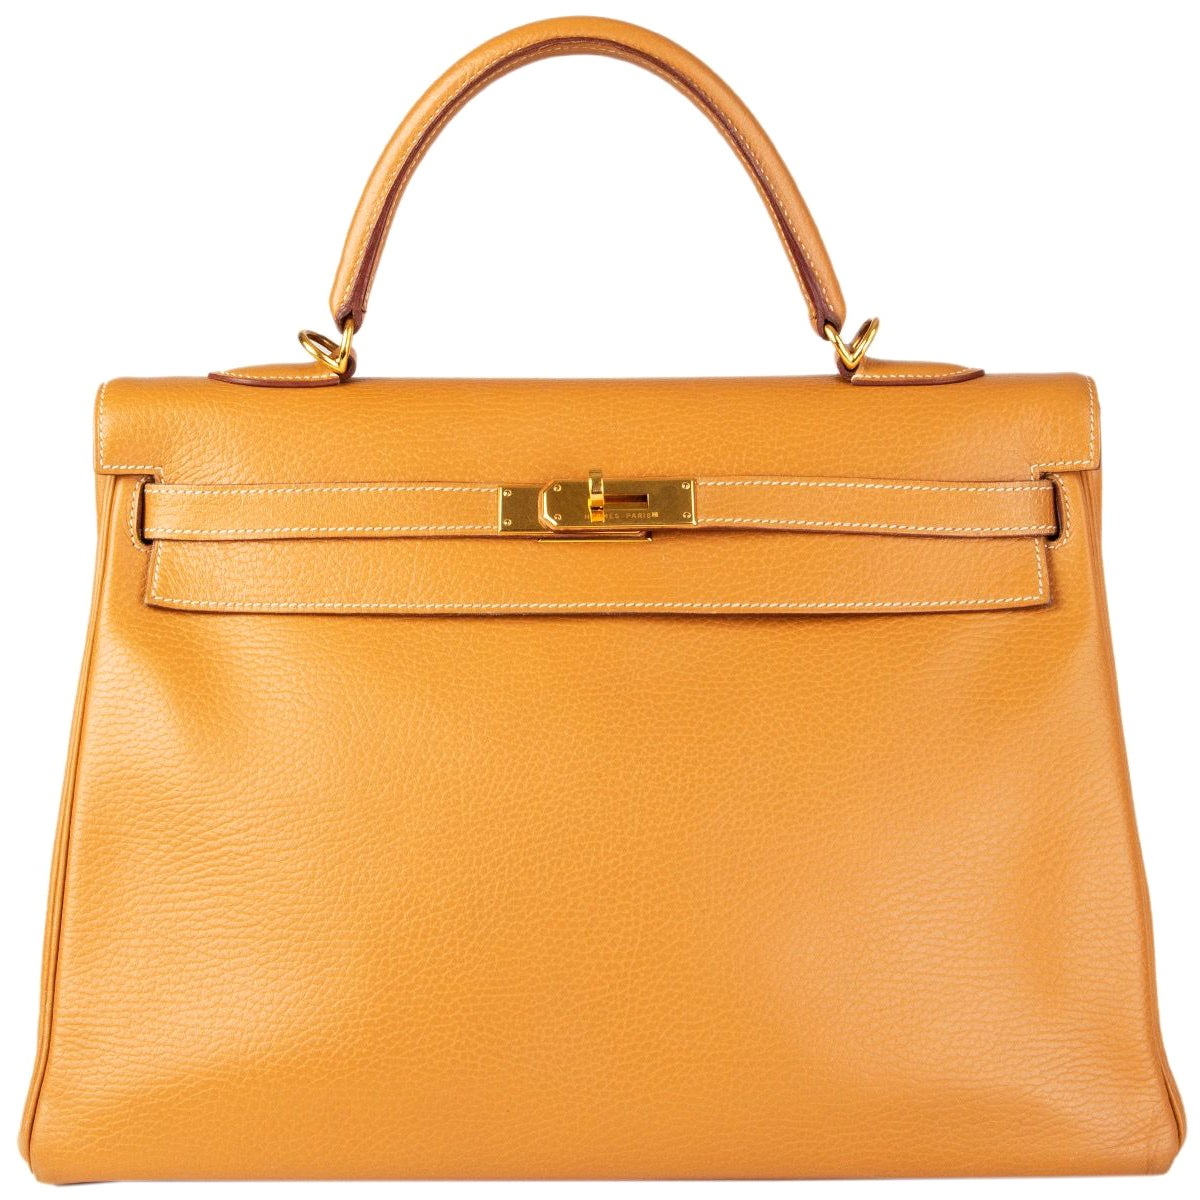 HERMES Naturelle beige Ardennes leather & Gold KELLY II 35 RETOURNER Bag